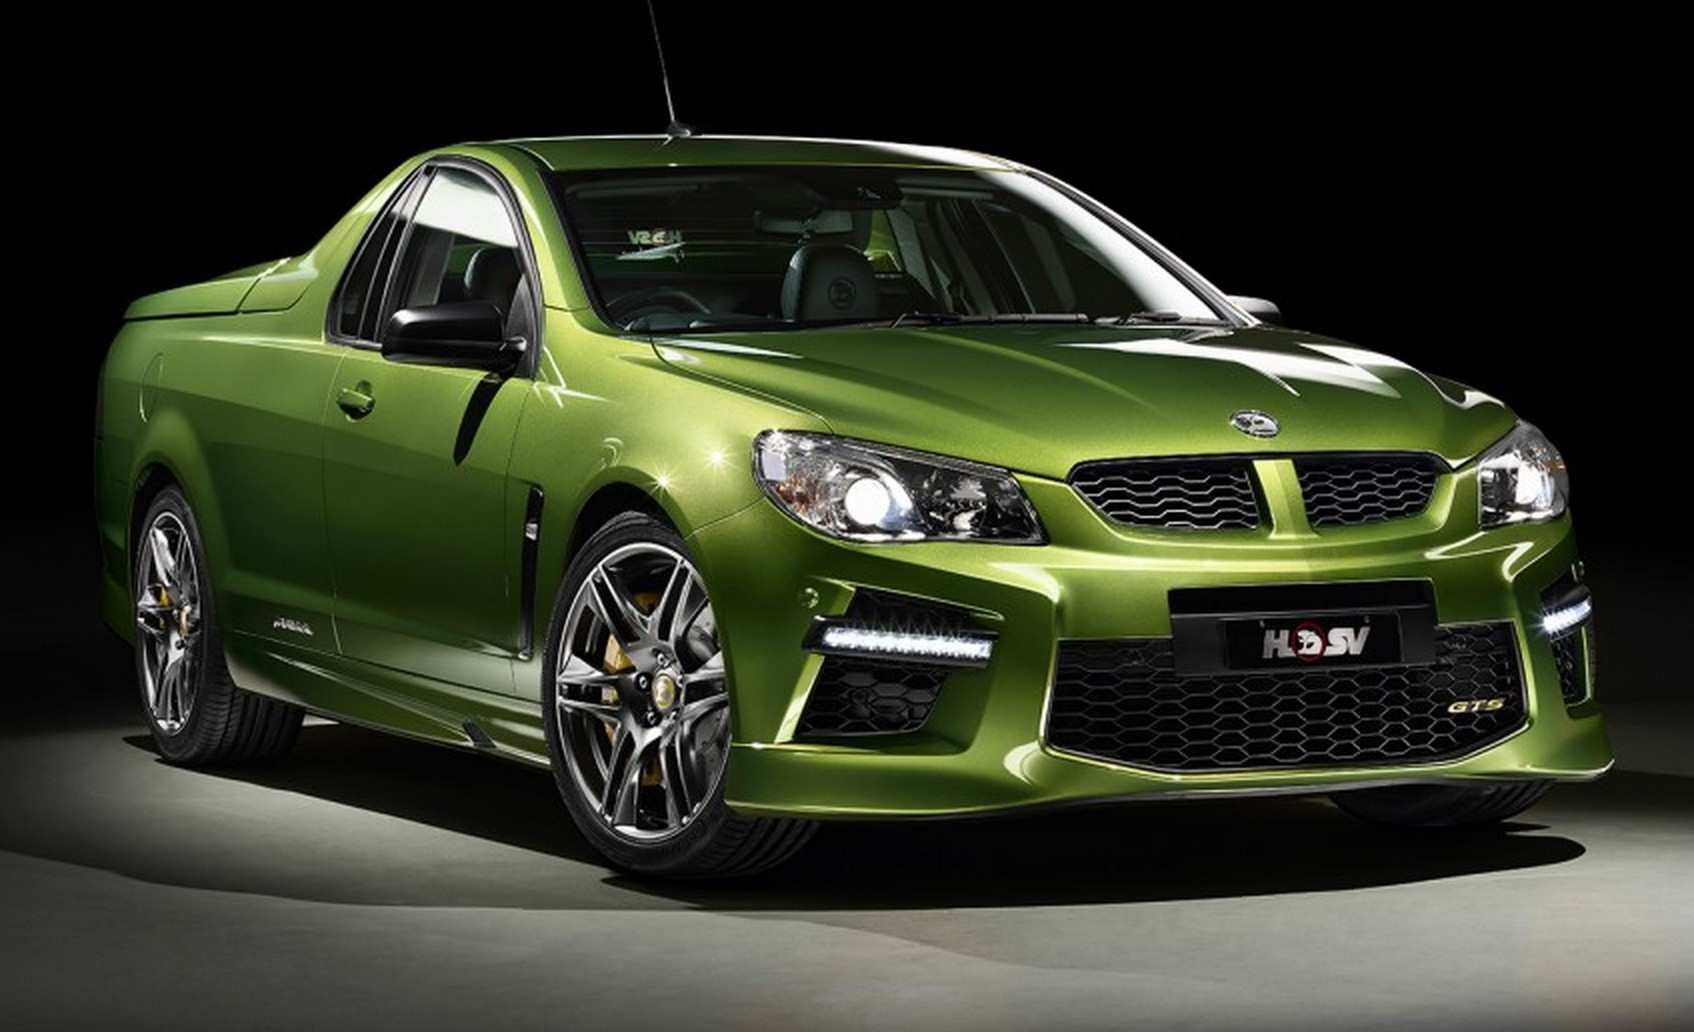 59 All New 2019 Holden Commodore Gts Spy Shoot